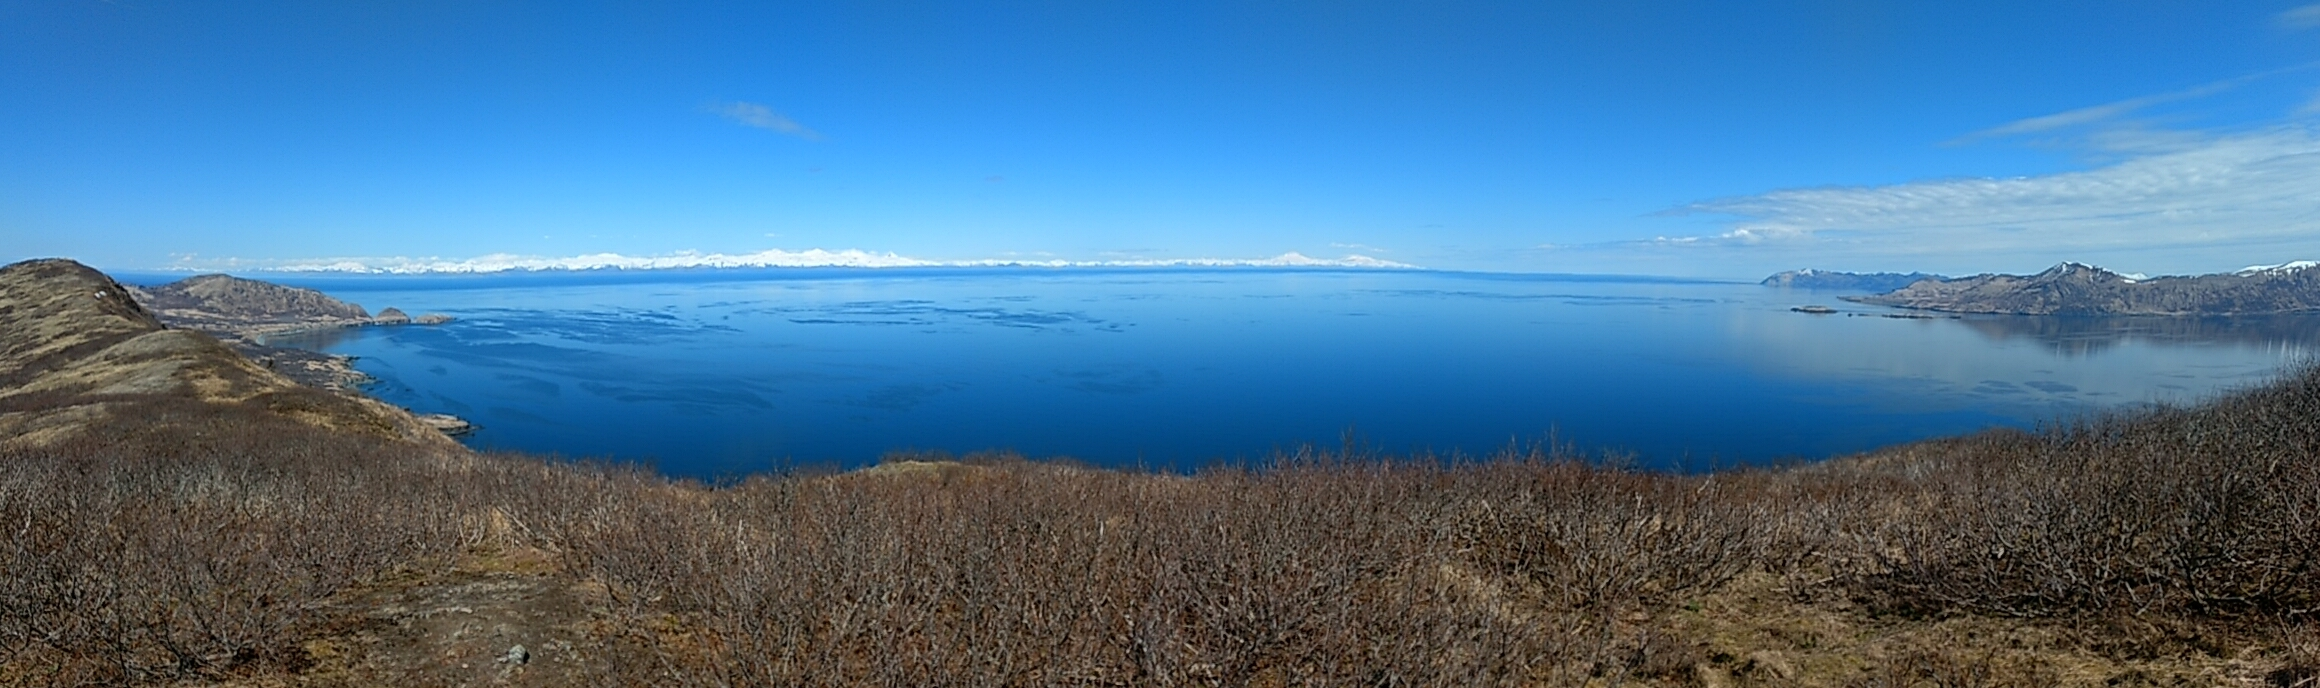 This is where our salmon comes from.What a glorious place to be swimming free. On the far horizon are the snow covered peaks of the Alaska mainland across the volatile Shelikof Straits. We hiked up this mountain last week as a spring tonic for mind and soul.